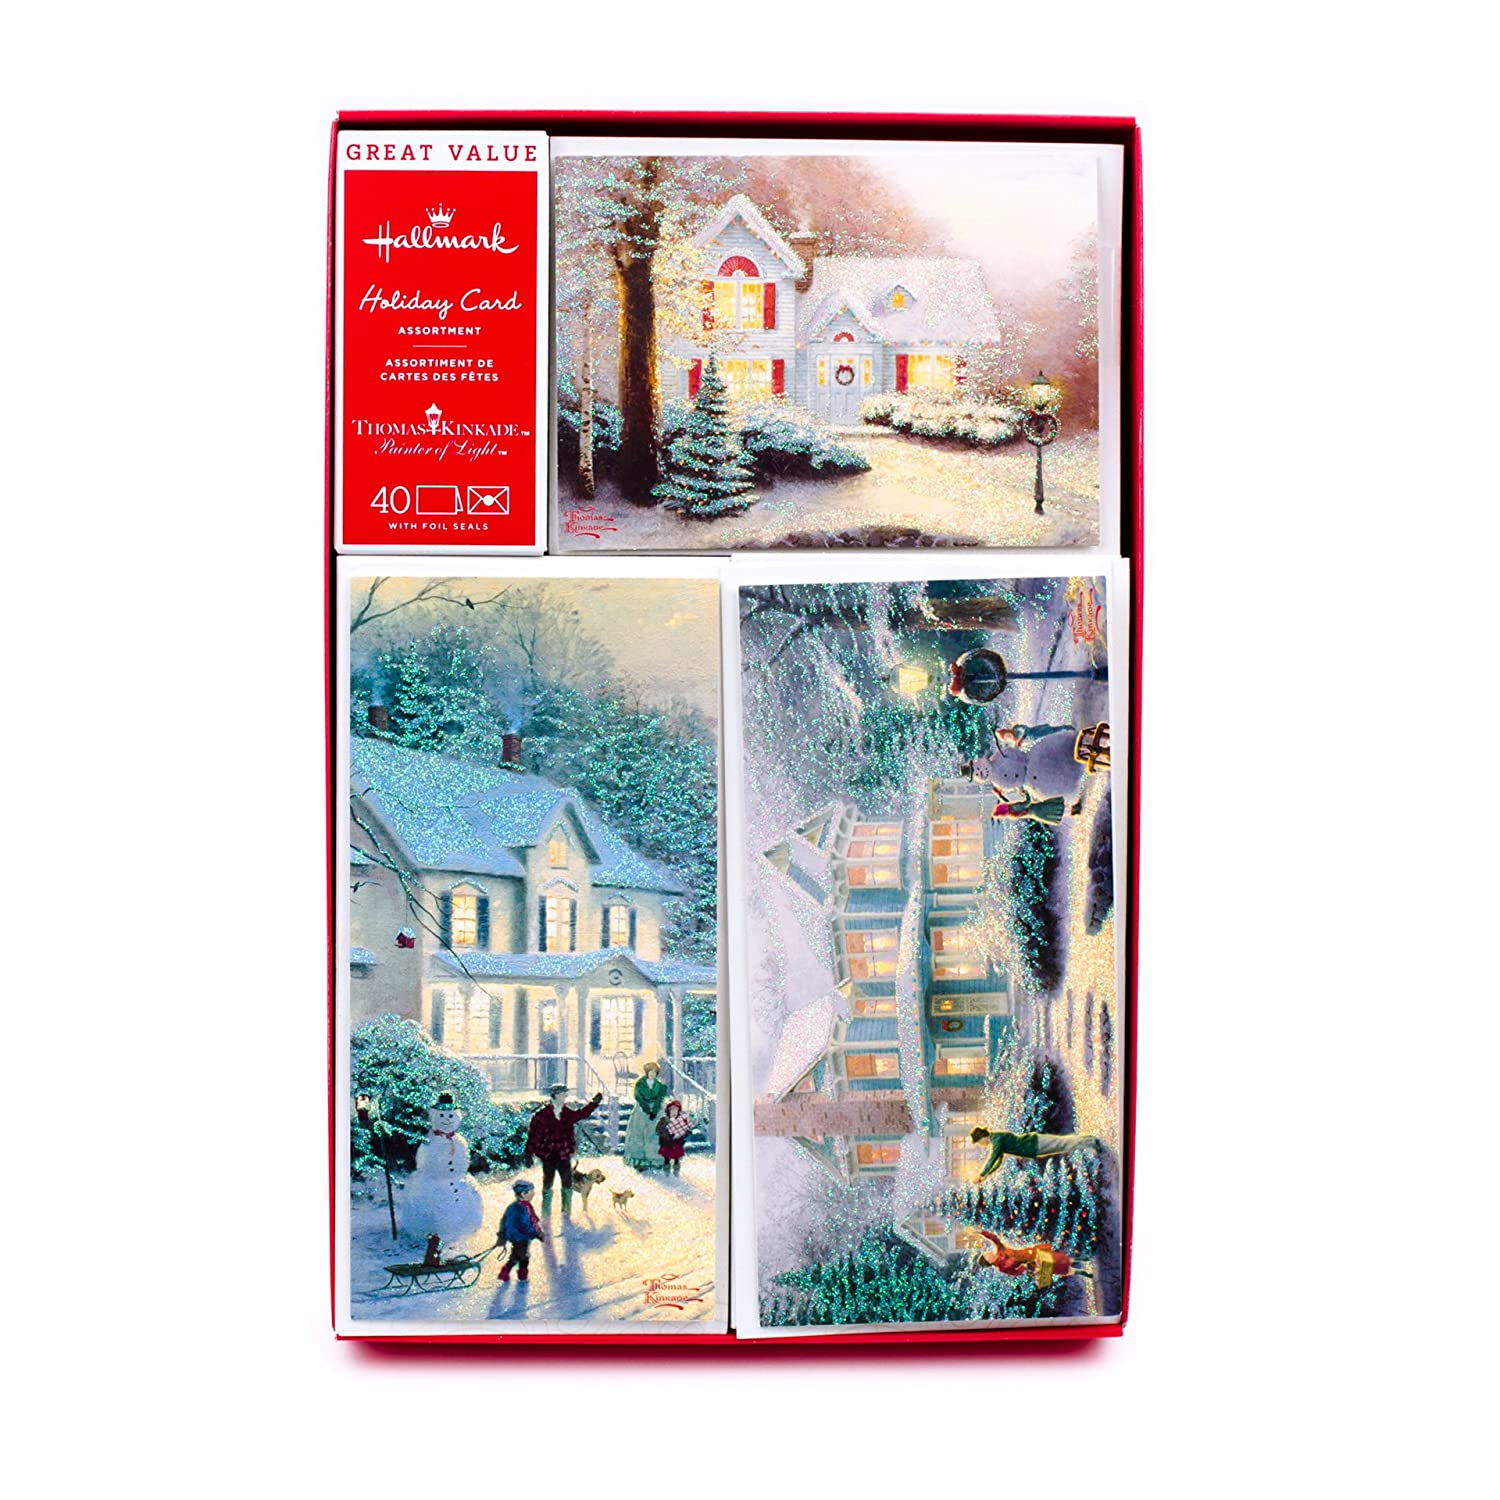 Amazon.com : Hallmark Thomas Kinkade Christmas Boxed Cards ...